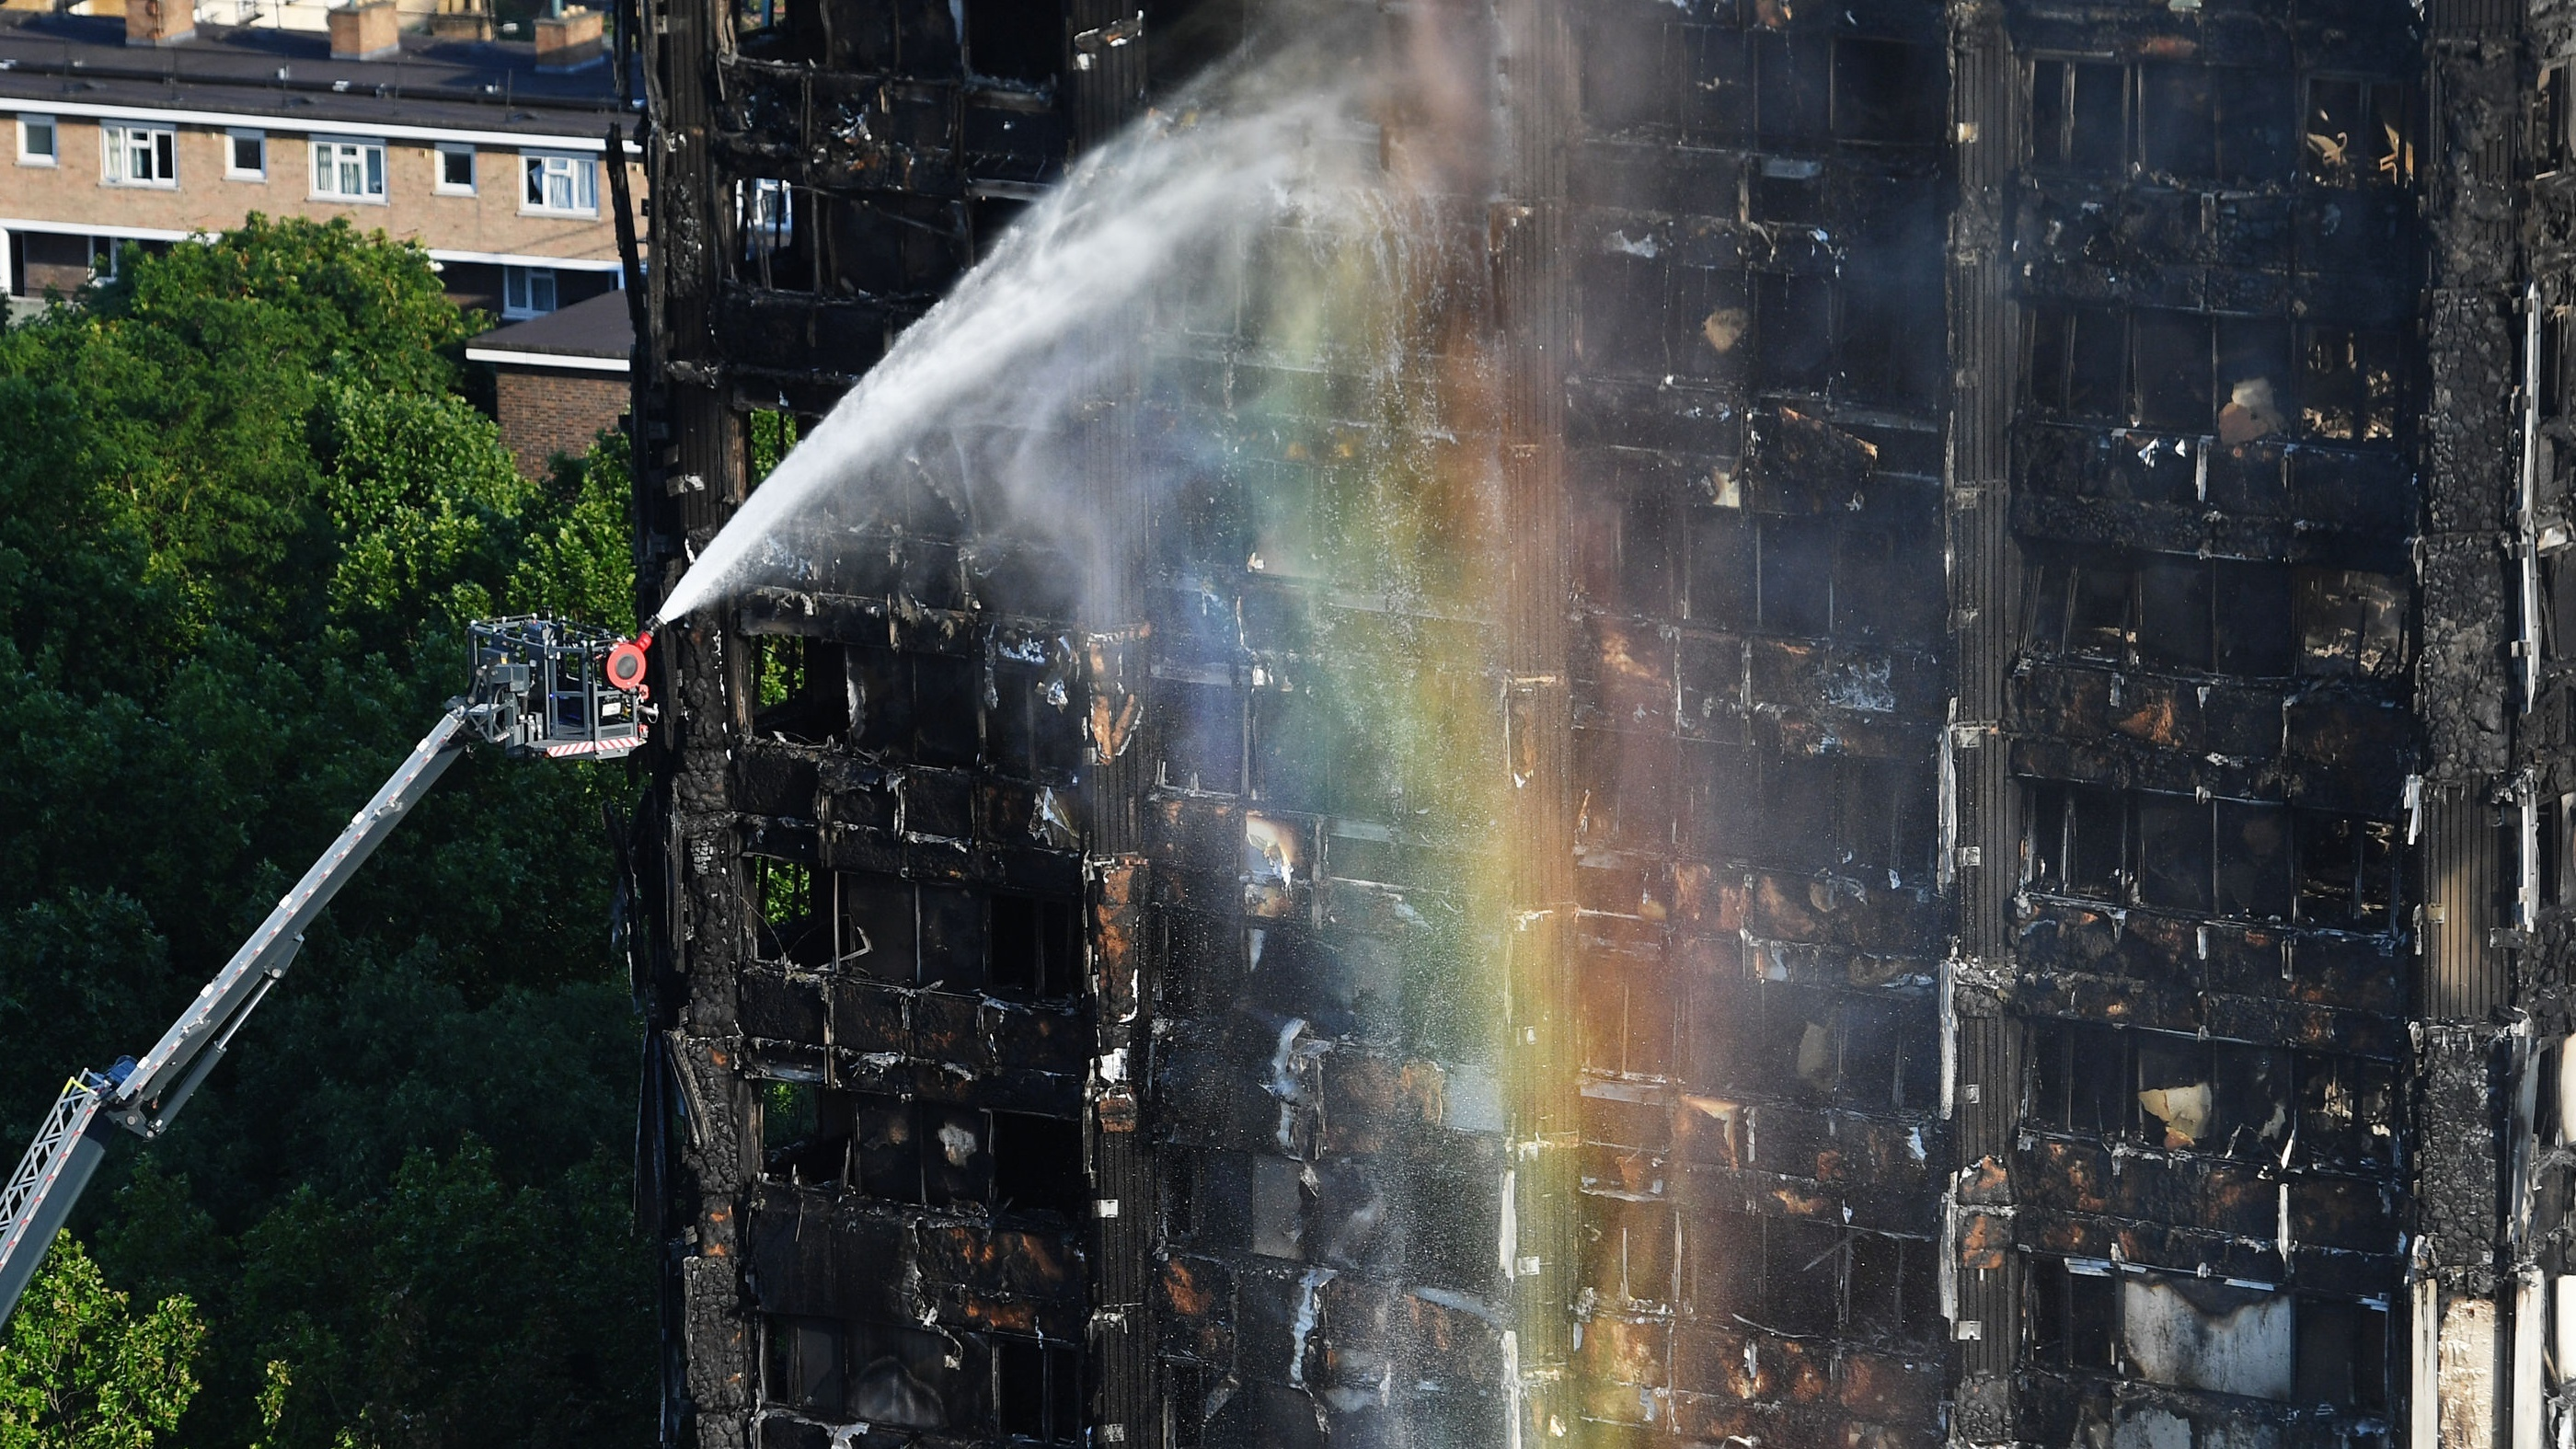 Firefighters spray water after a fire engulfed the 24-storey Grenfell Tower (Victoria Jones/PA)